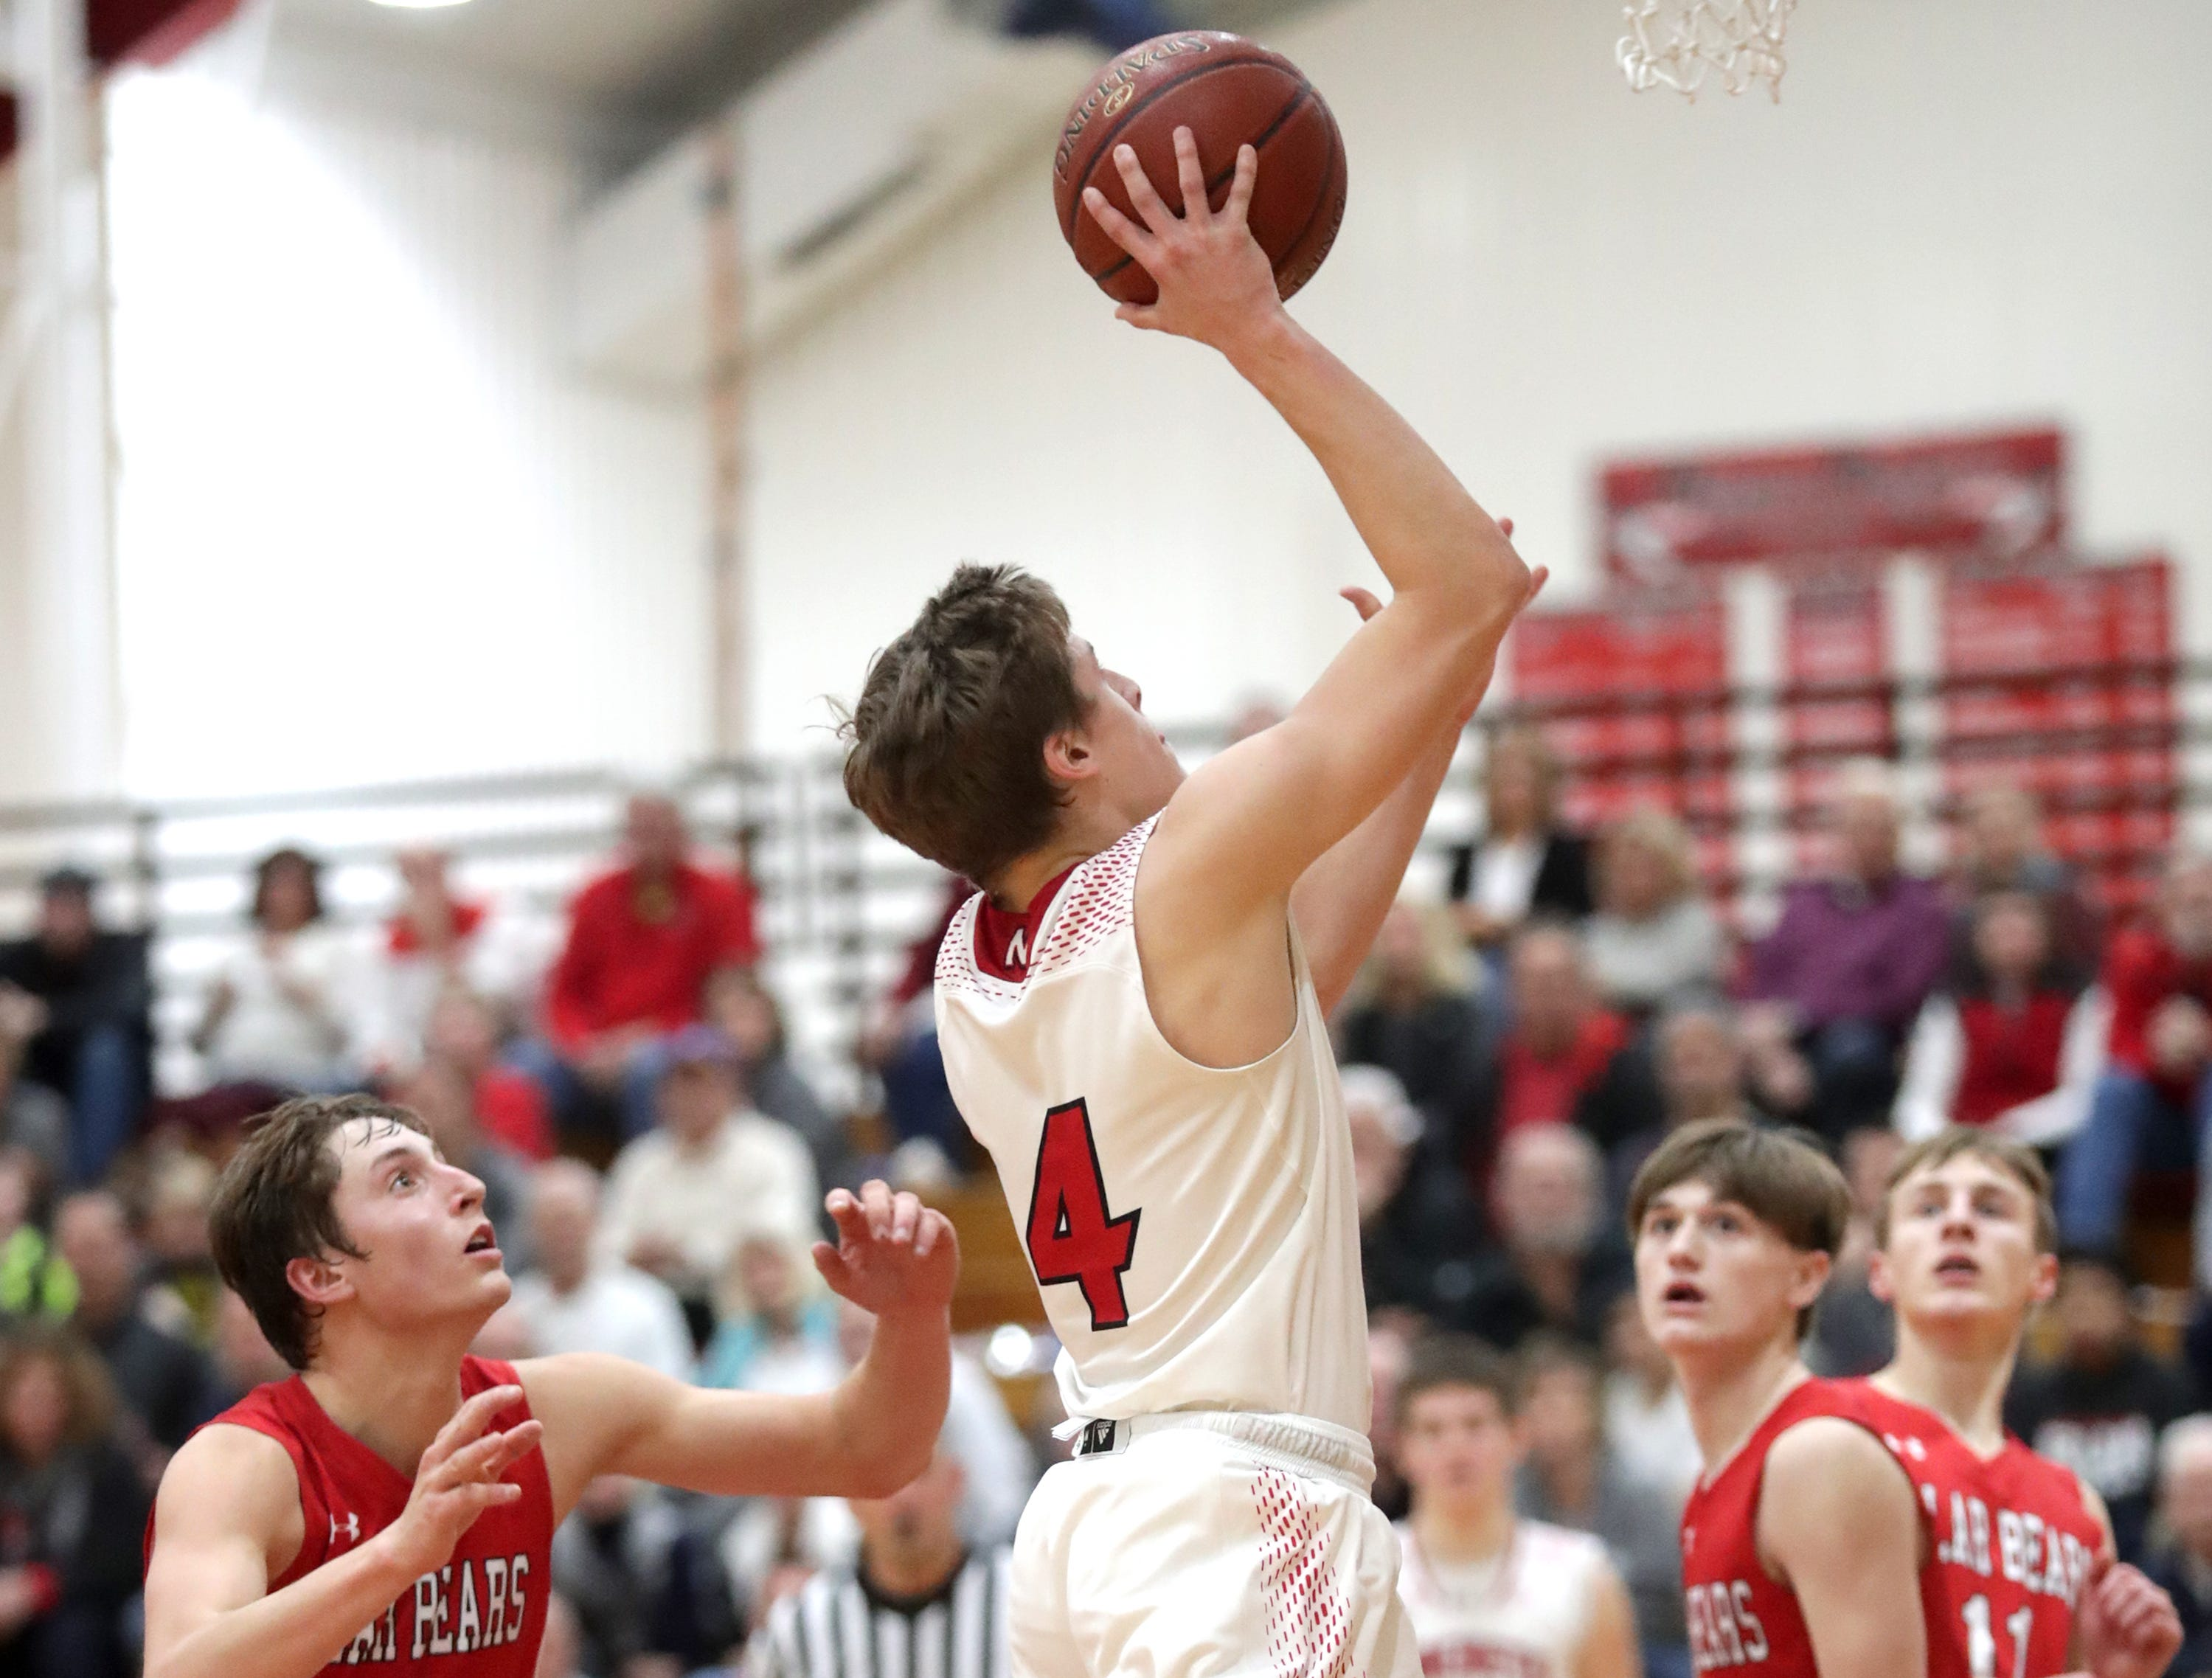 Neenah High School's #4 Peyton Mellenthin shoots the go ahead basket in overtime against Hortonville High School during their Fox Valley Association boys basketball game on Friday, November 30, 2018, in Neenah, Wis. Neenah defeated Hortonville 71 to 67 in overtime.Wm. Glasheen/USA TODAY NETWORK-Wisconsin.